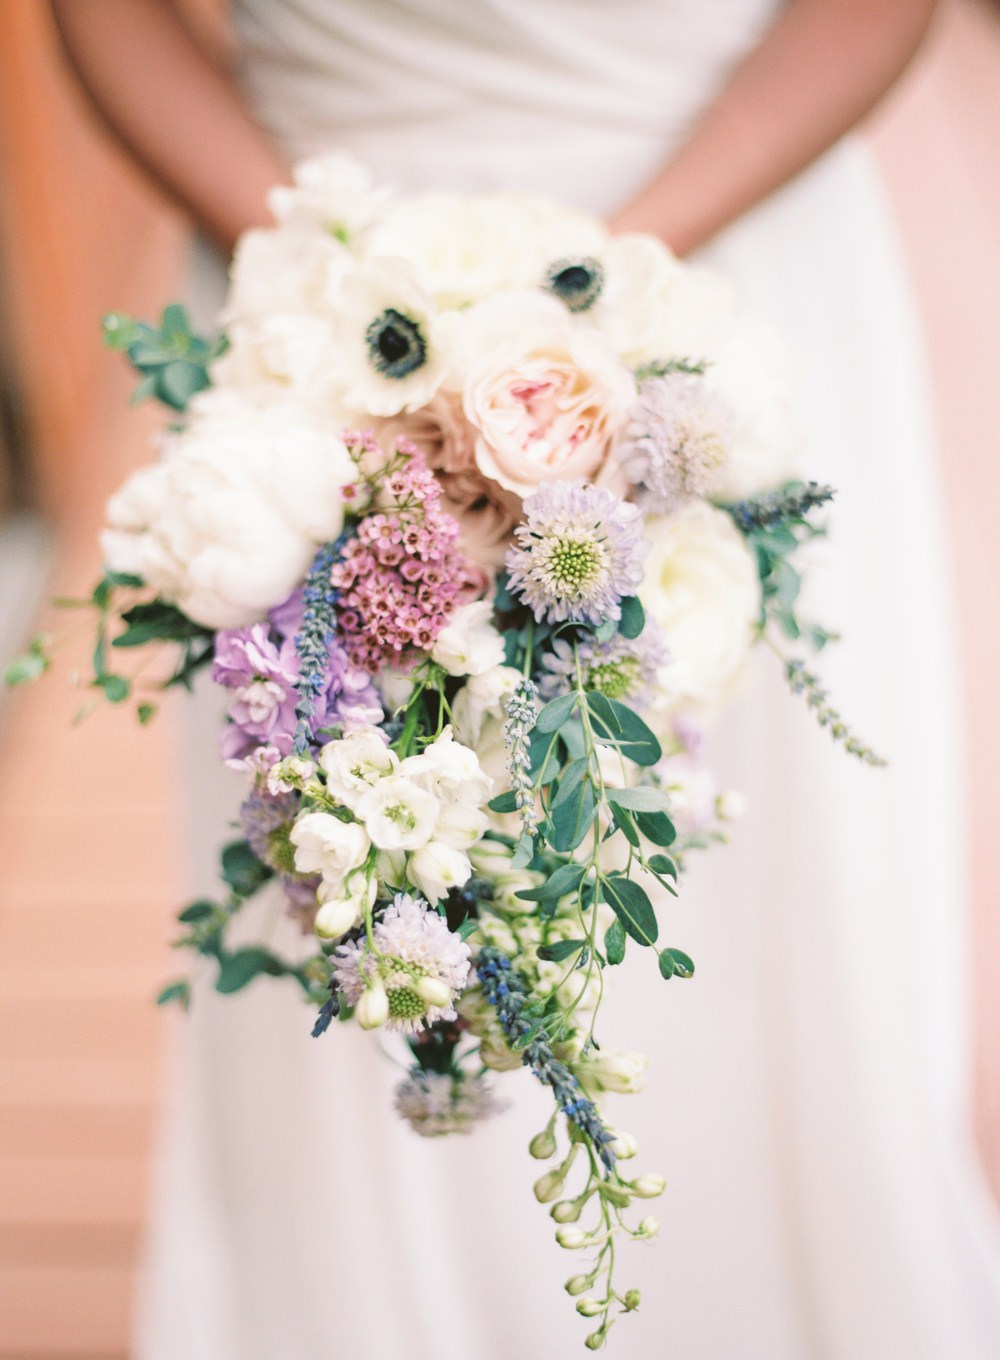 Cascading soft watercolor tone garden-style bouquet inspired with a bit of lavender. This is one of my favorite photos with the soft lighting and detail shot of the special florals in Jessica's bouquet.   Cottrell Photography  |  Wolf Mountain Vineyards